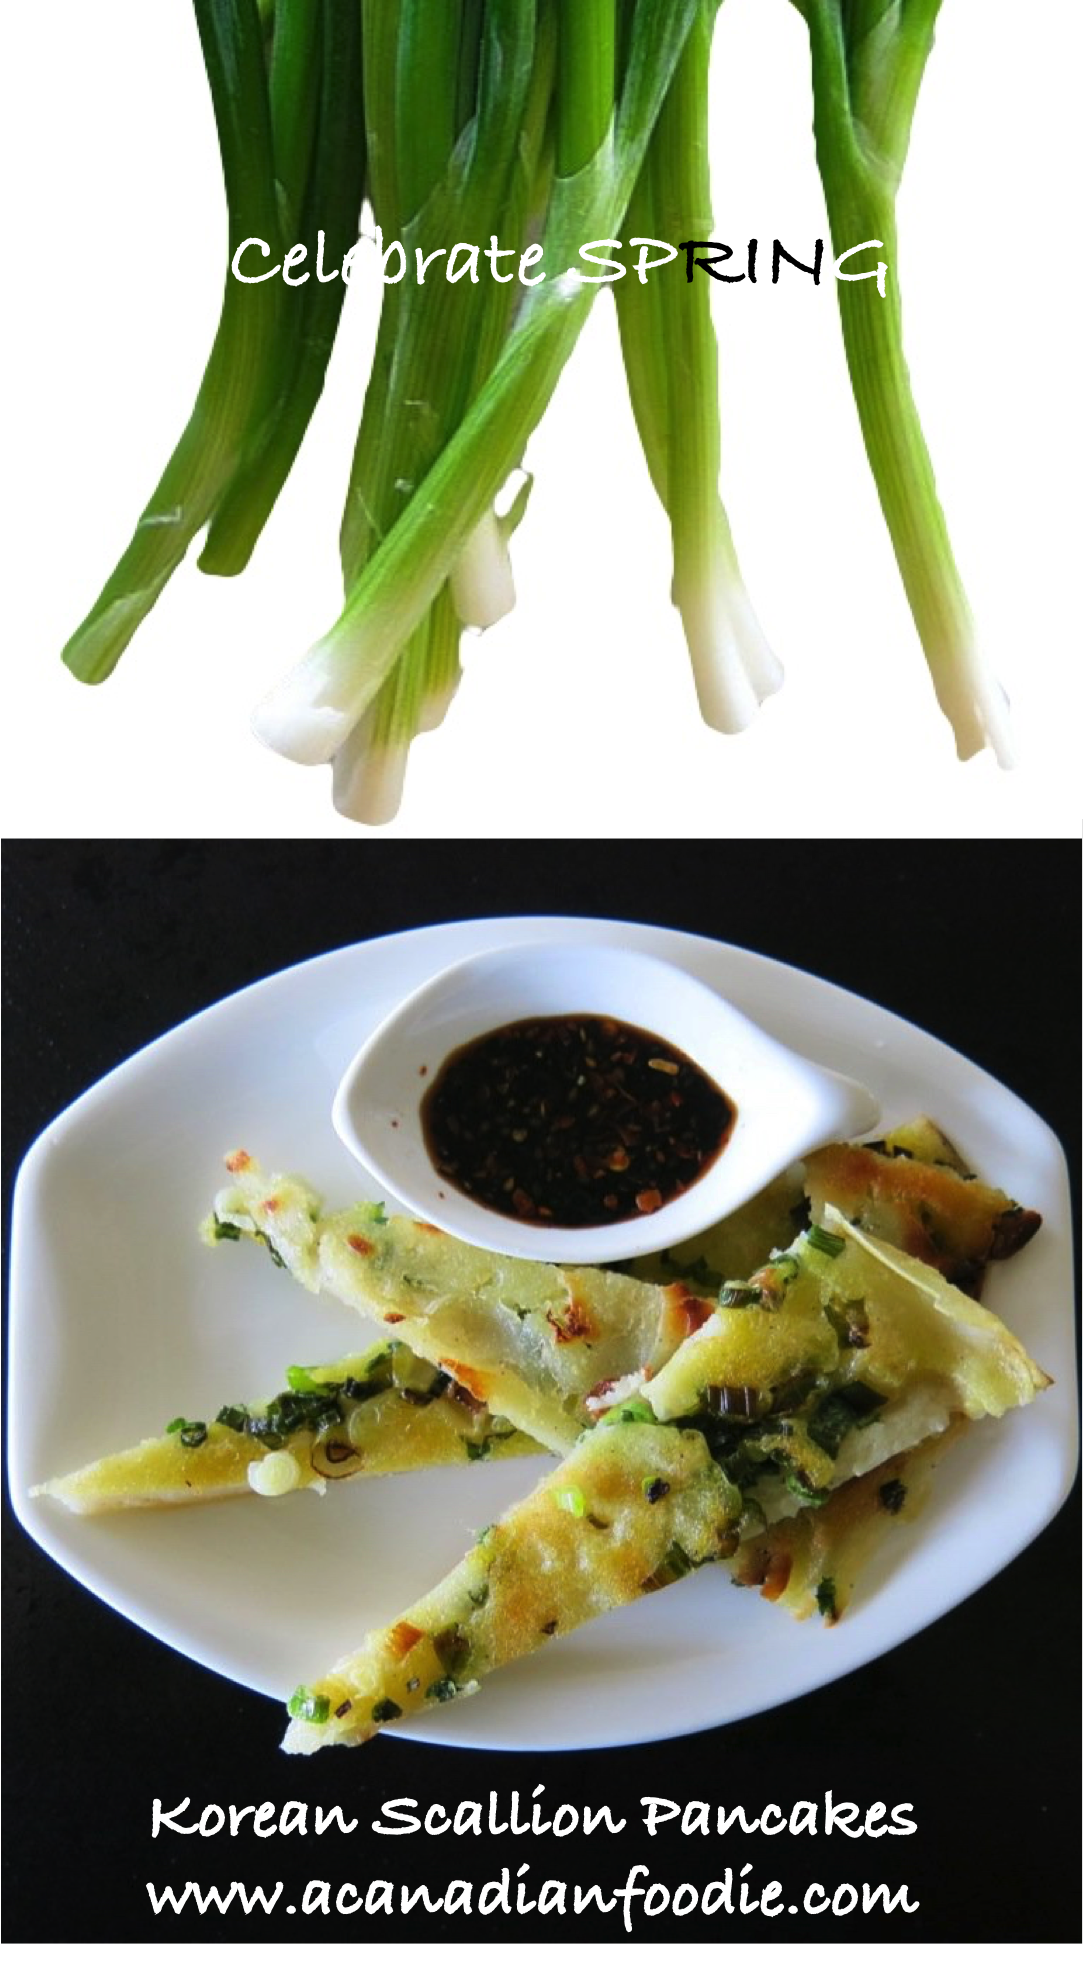 Korean Scallion Pancakes LONG